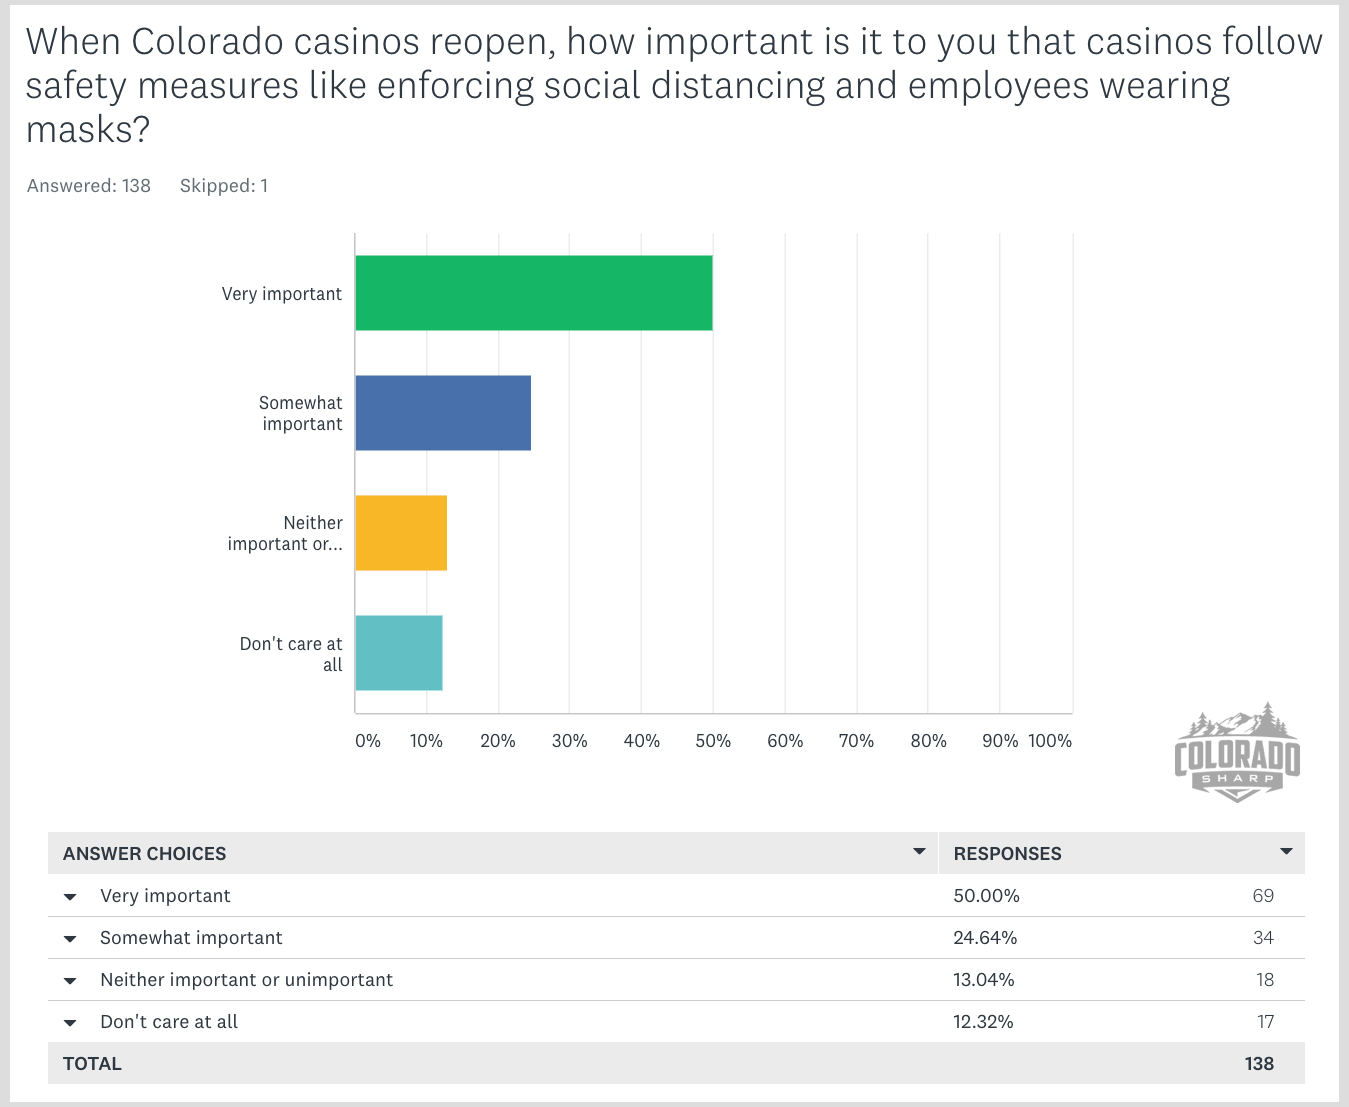 When Colorado casinos reopen, how important is it to you that casinos follow safety measures like enforcing social distancing and employees wearing masks?